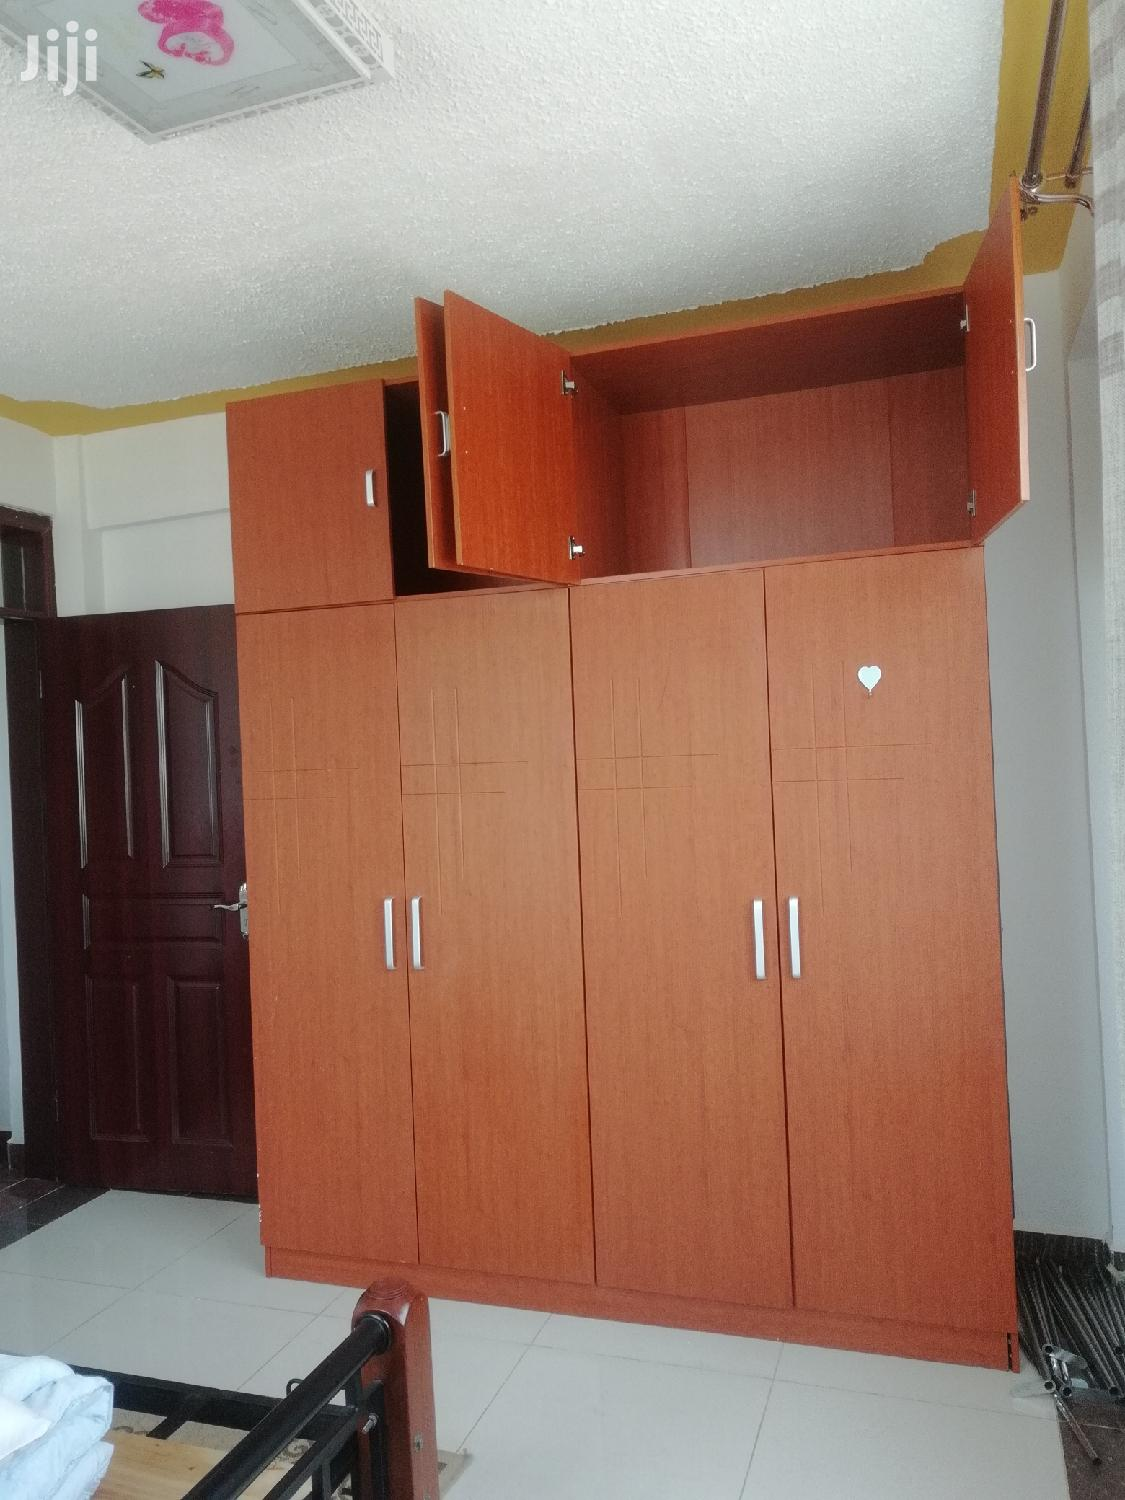 Proprty World,1,2,3brs Apartment With Pool,Gym And Secure | Houses & Apartments For Rent for sale in Kilimani, Nairobi, Kenya